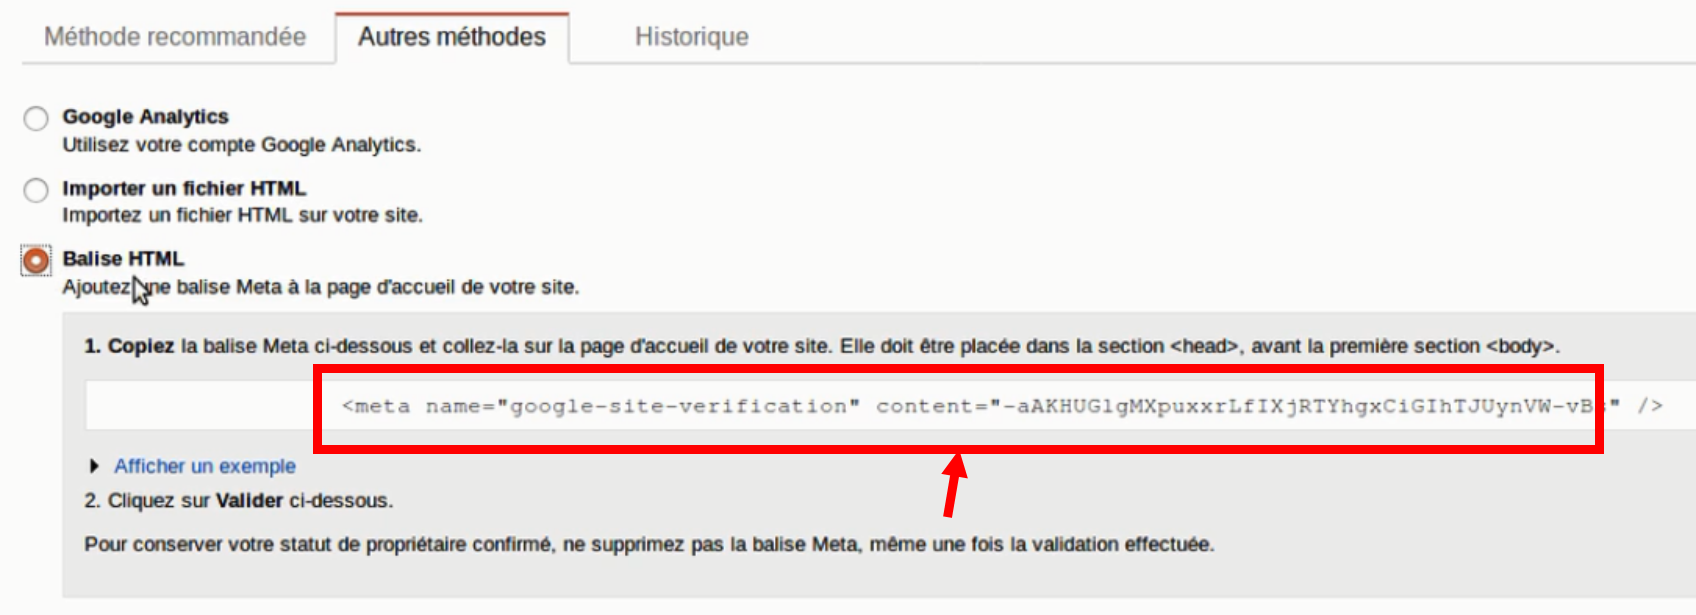 Méthode de vérification sur la Google Search Console